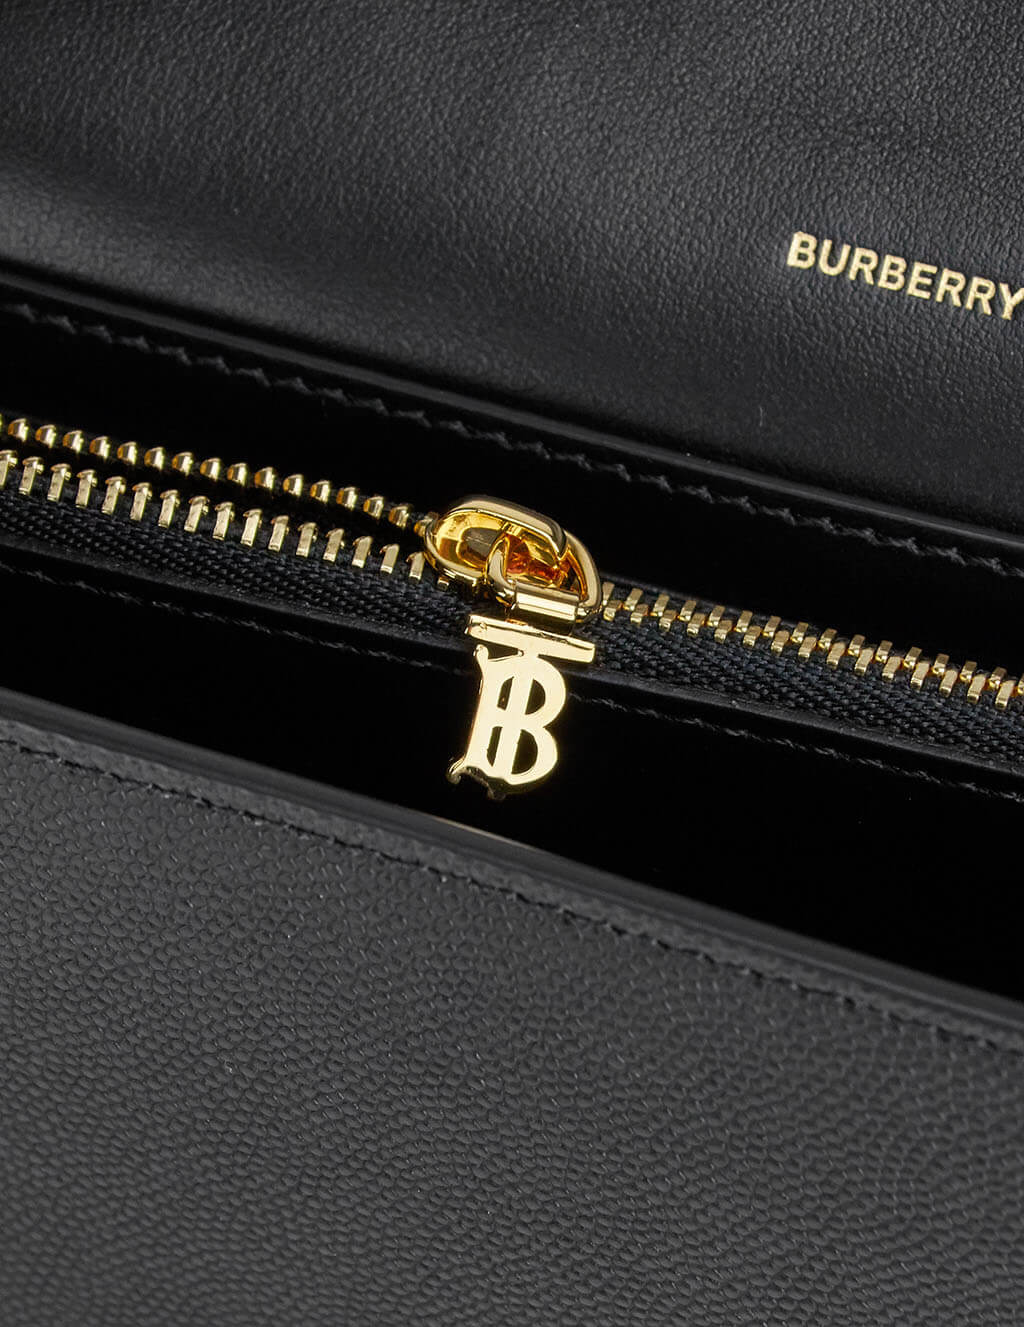 Burberry Women's Black Leather Monogram Wallet 8020728A1189